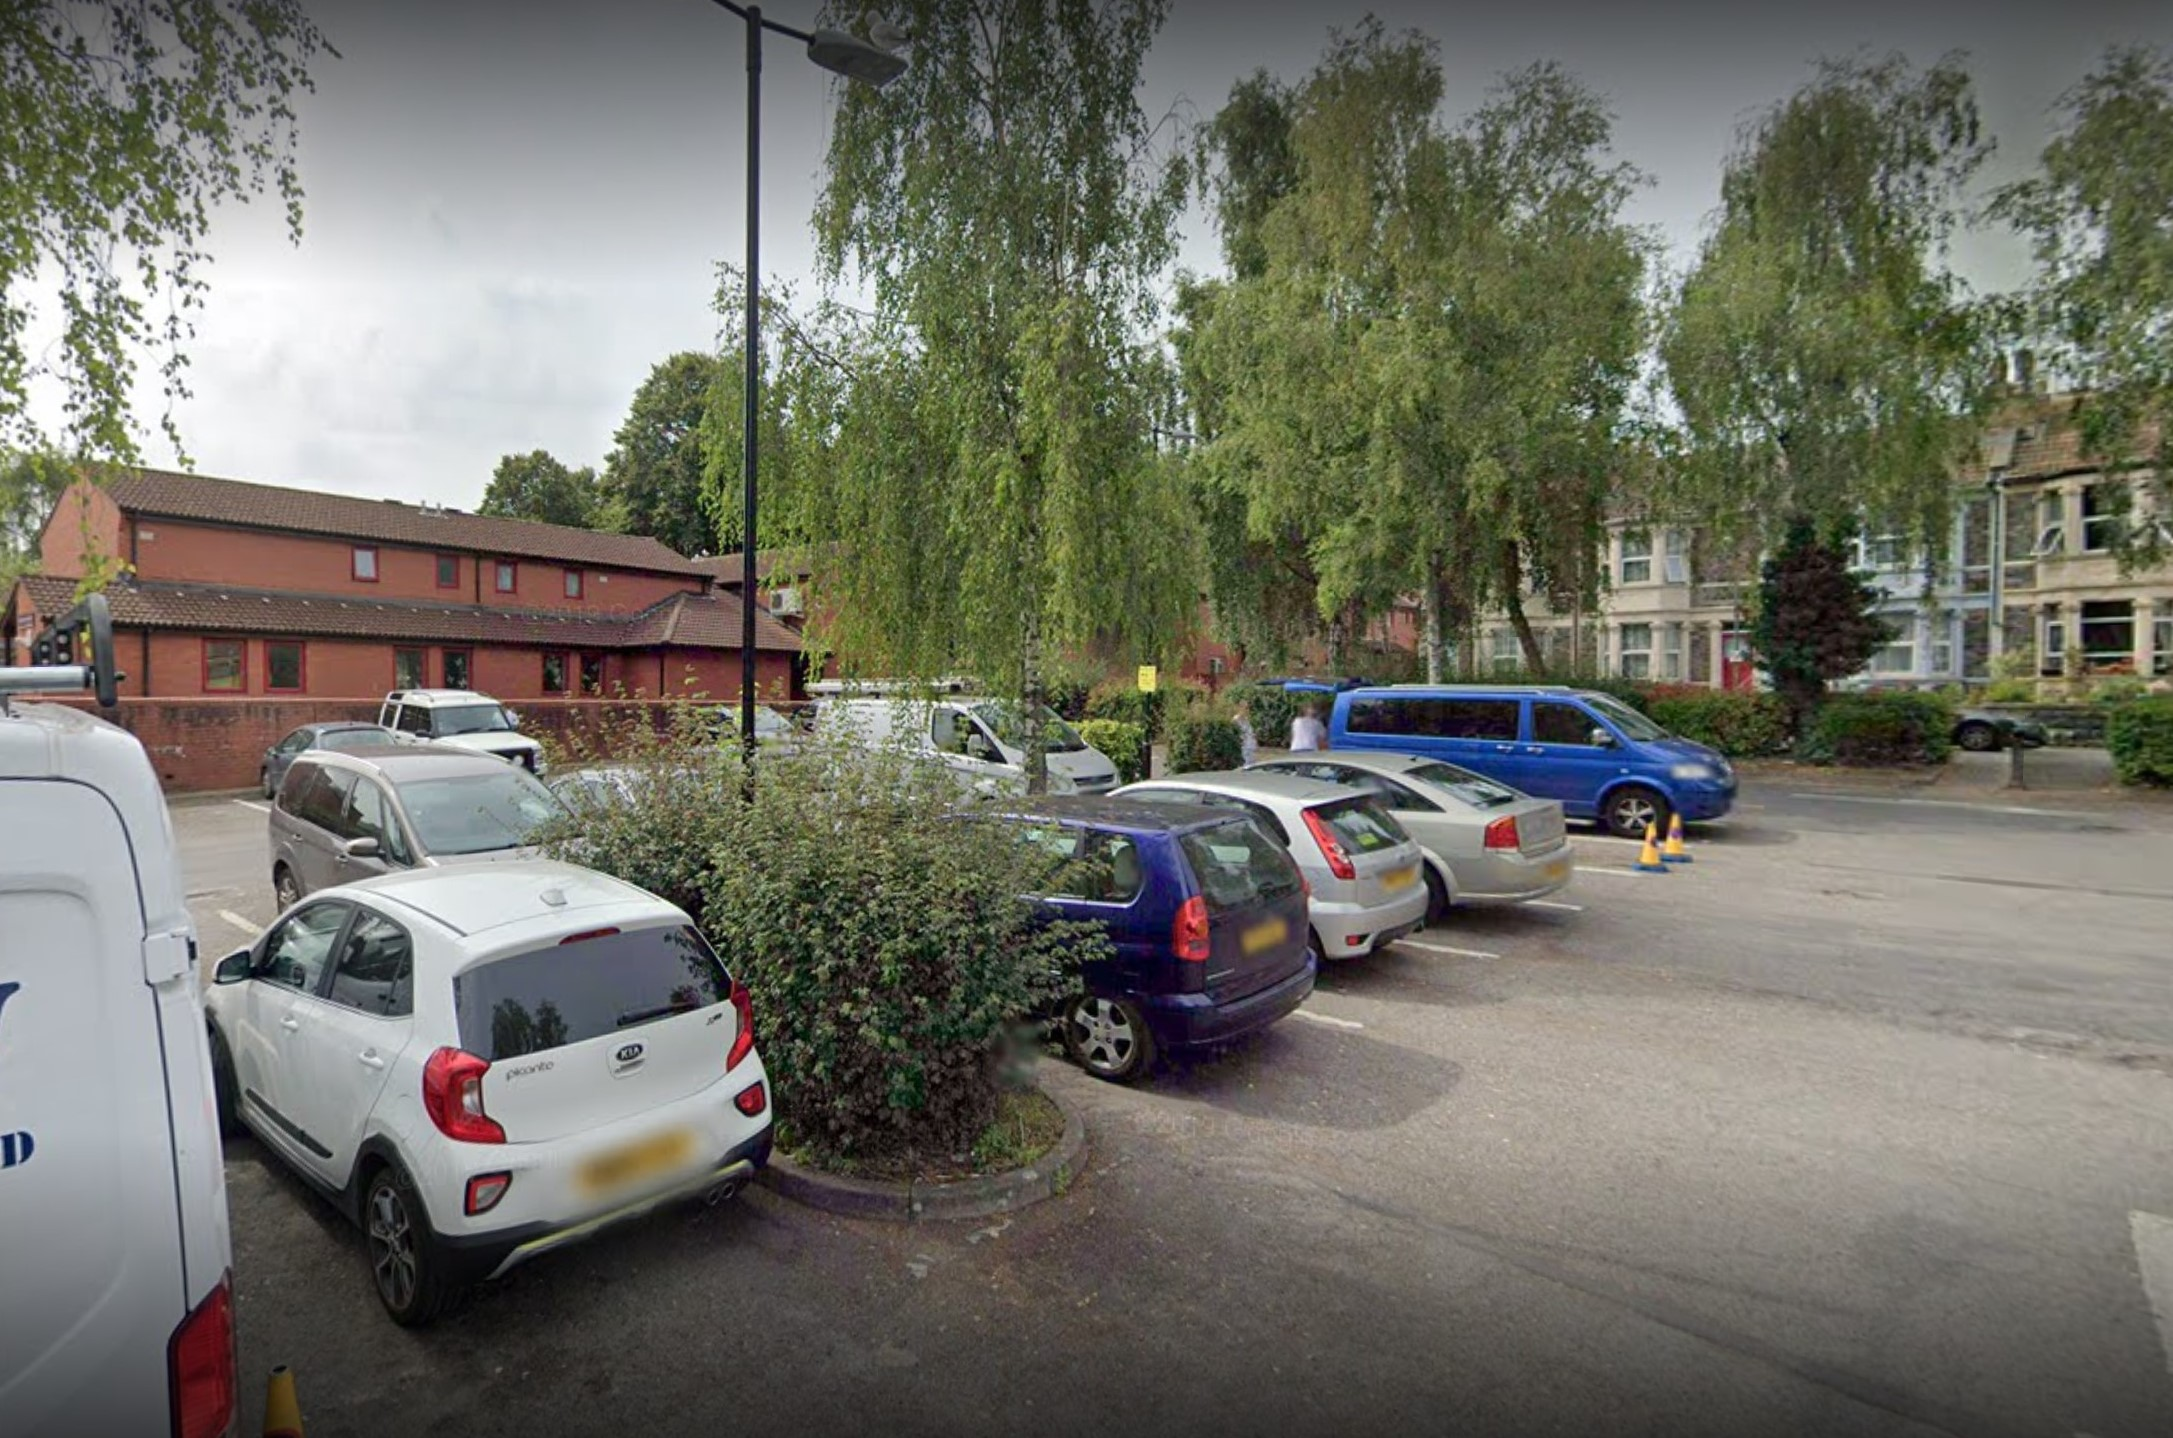 Paradise lost? Proposals for three-storey parking are 'backward step' - residents